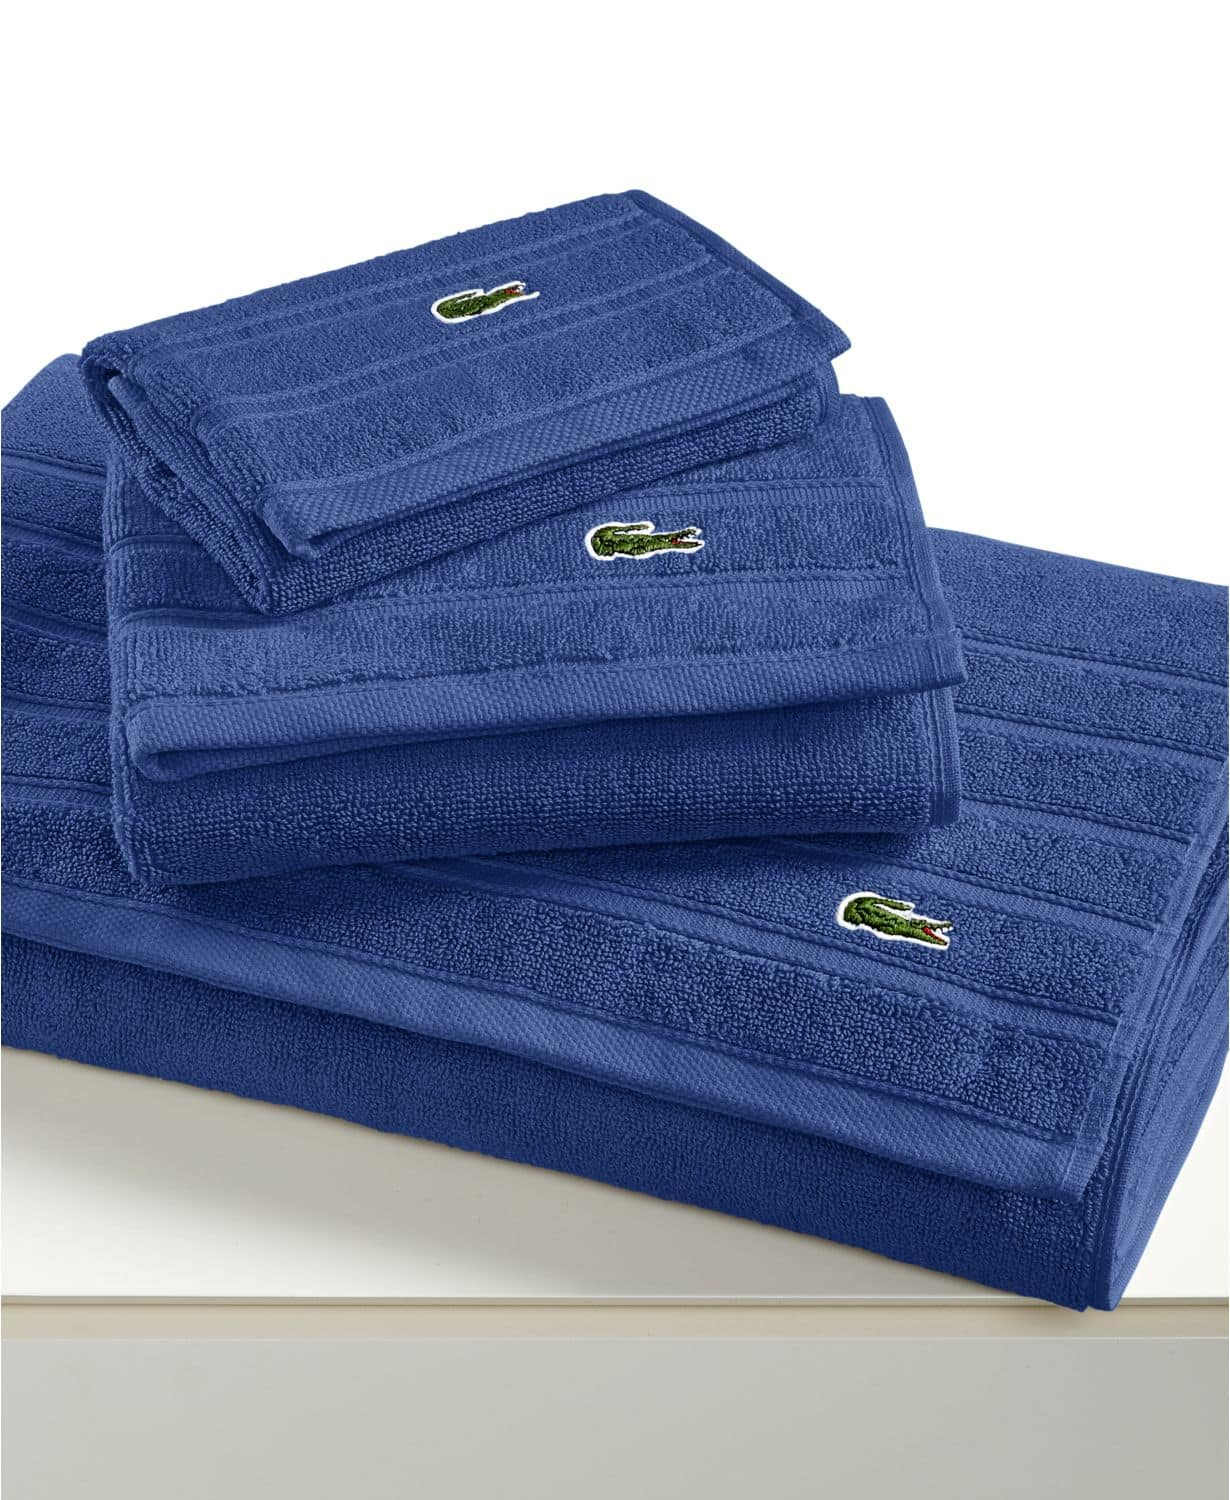 """Lacoste Croc Solid 13"""" Square Washcloths $3.50,  Lacoste Croc Solid 16"""" x 30"""" Hand Towel $5.75. Free Ship To Store/ Store Pick Up."""